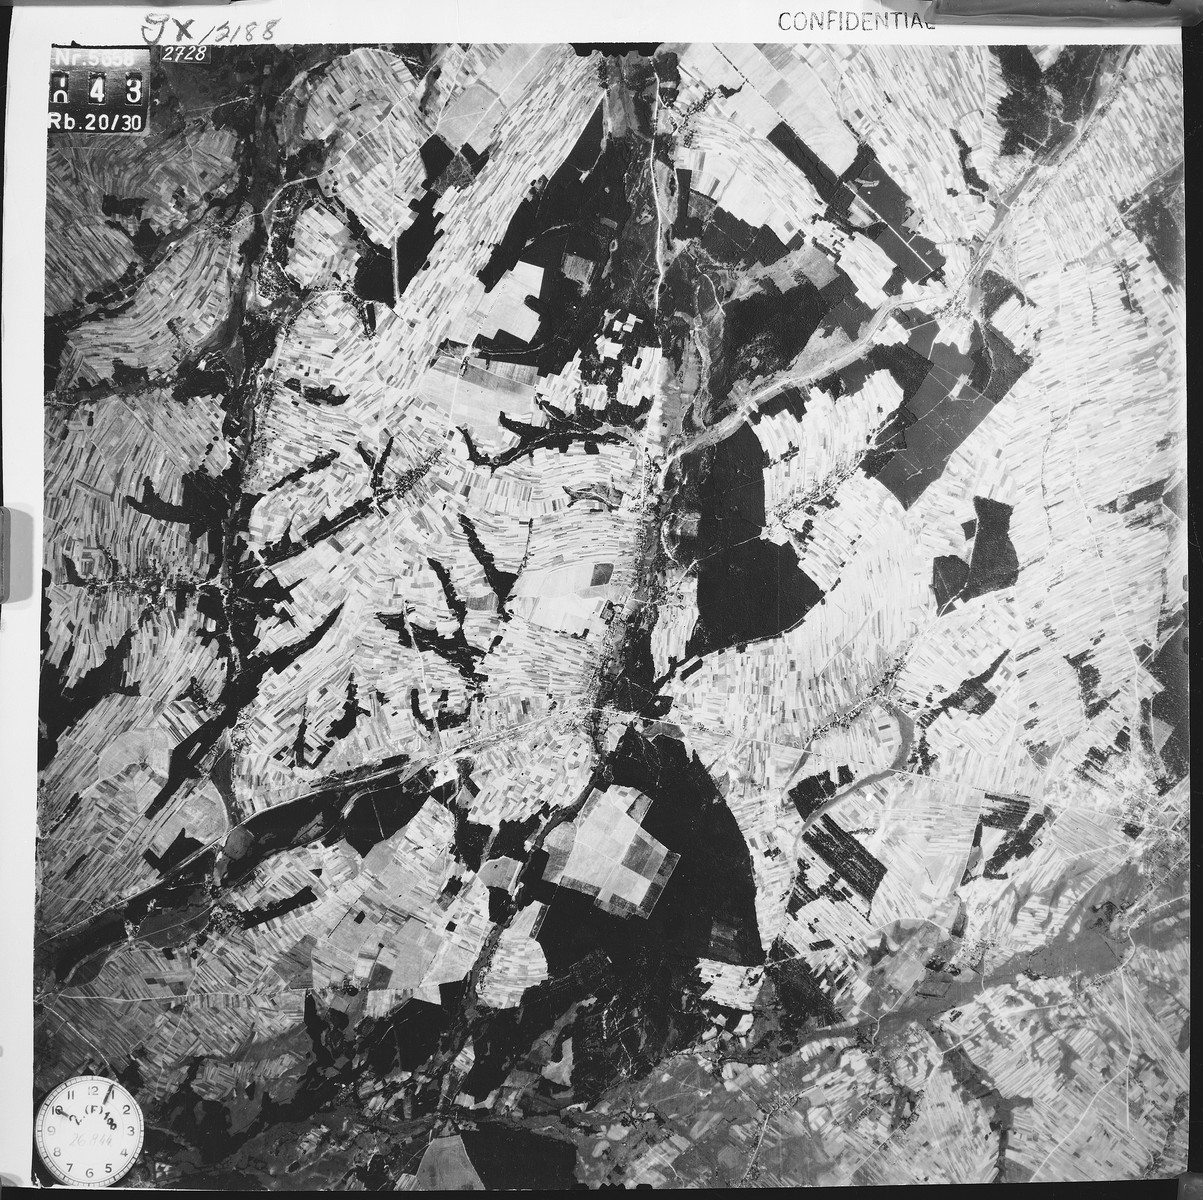 An aerial view of the Belzec area taken by the Luftwaffe during the war.